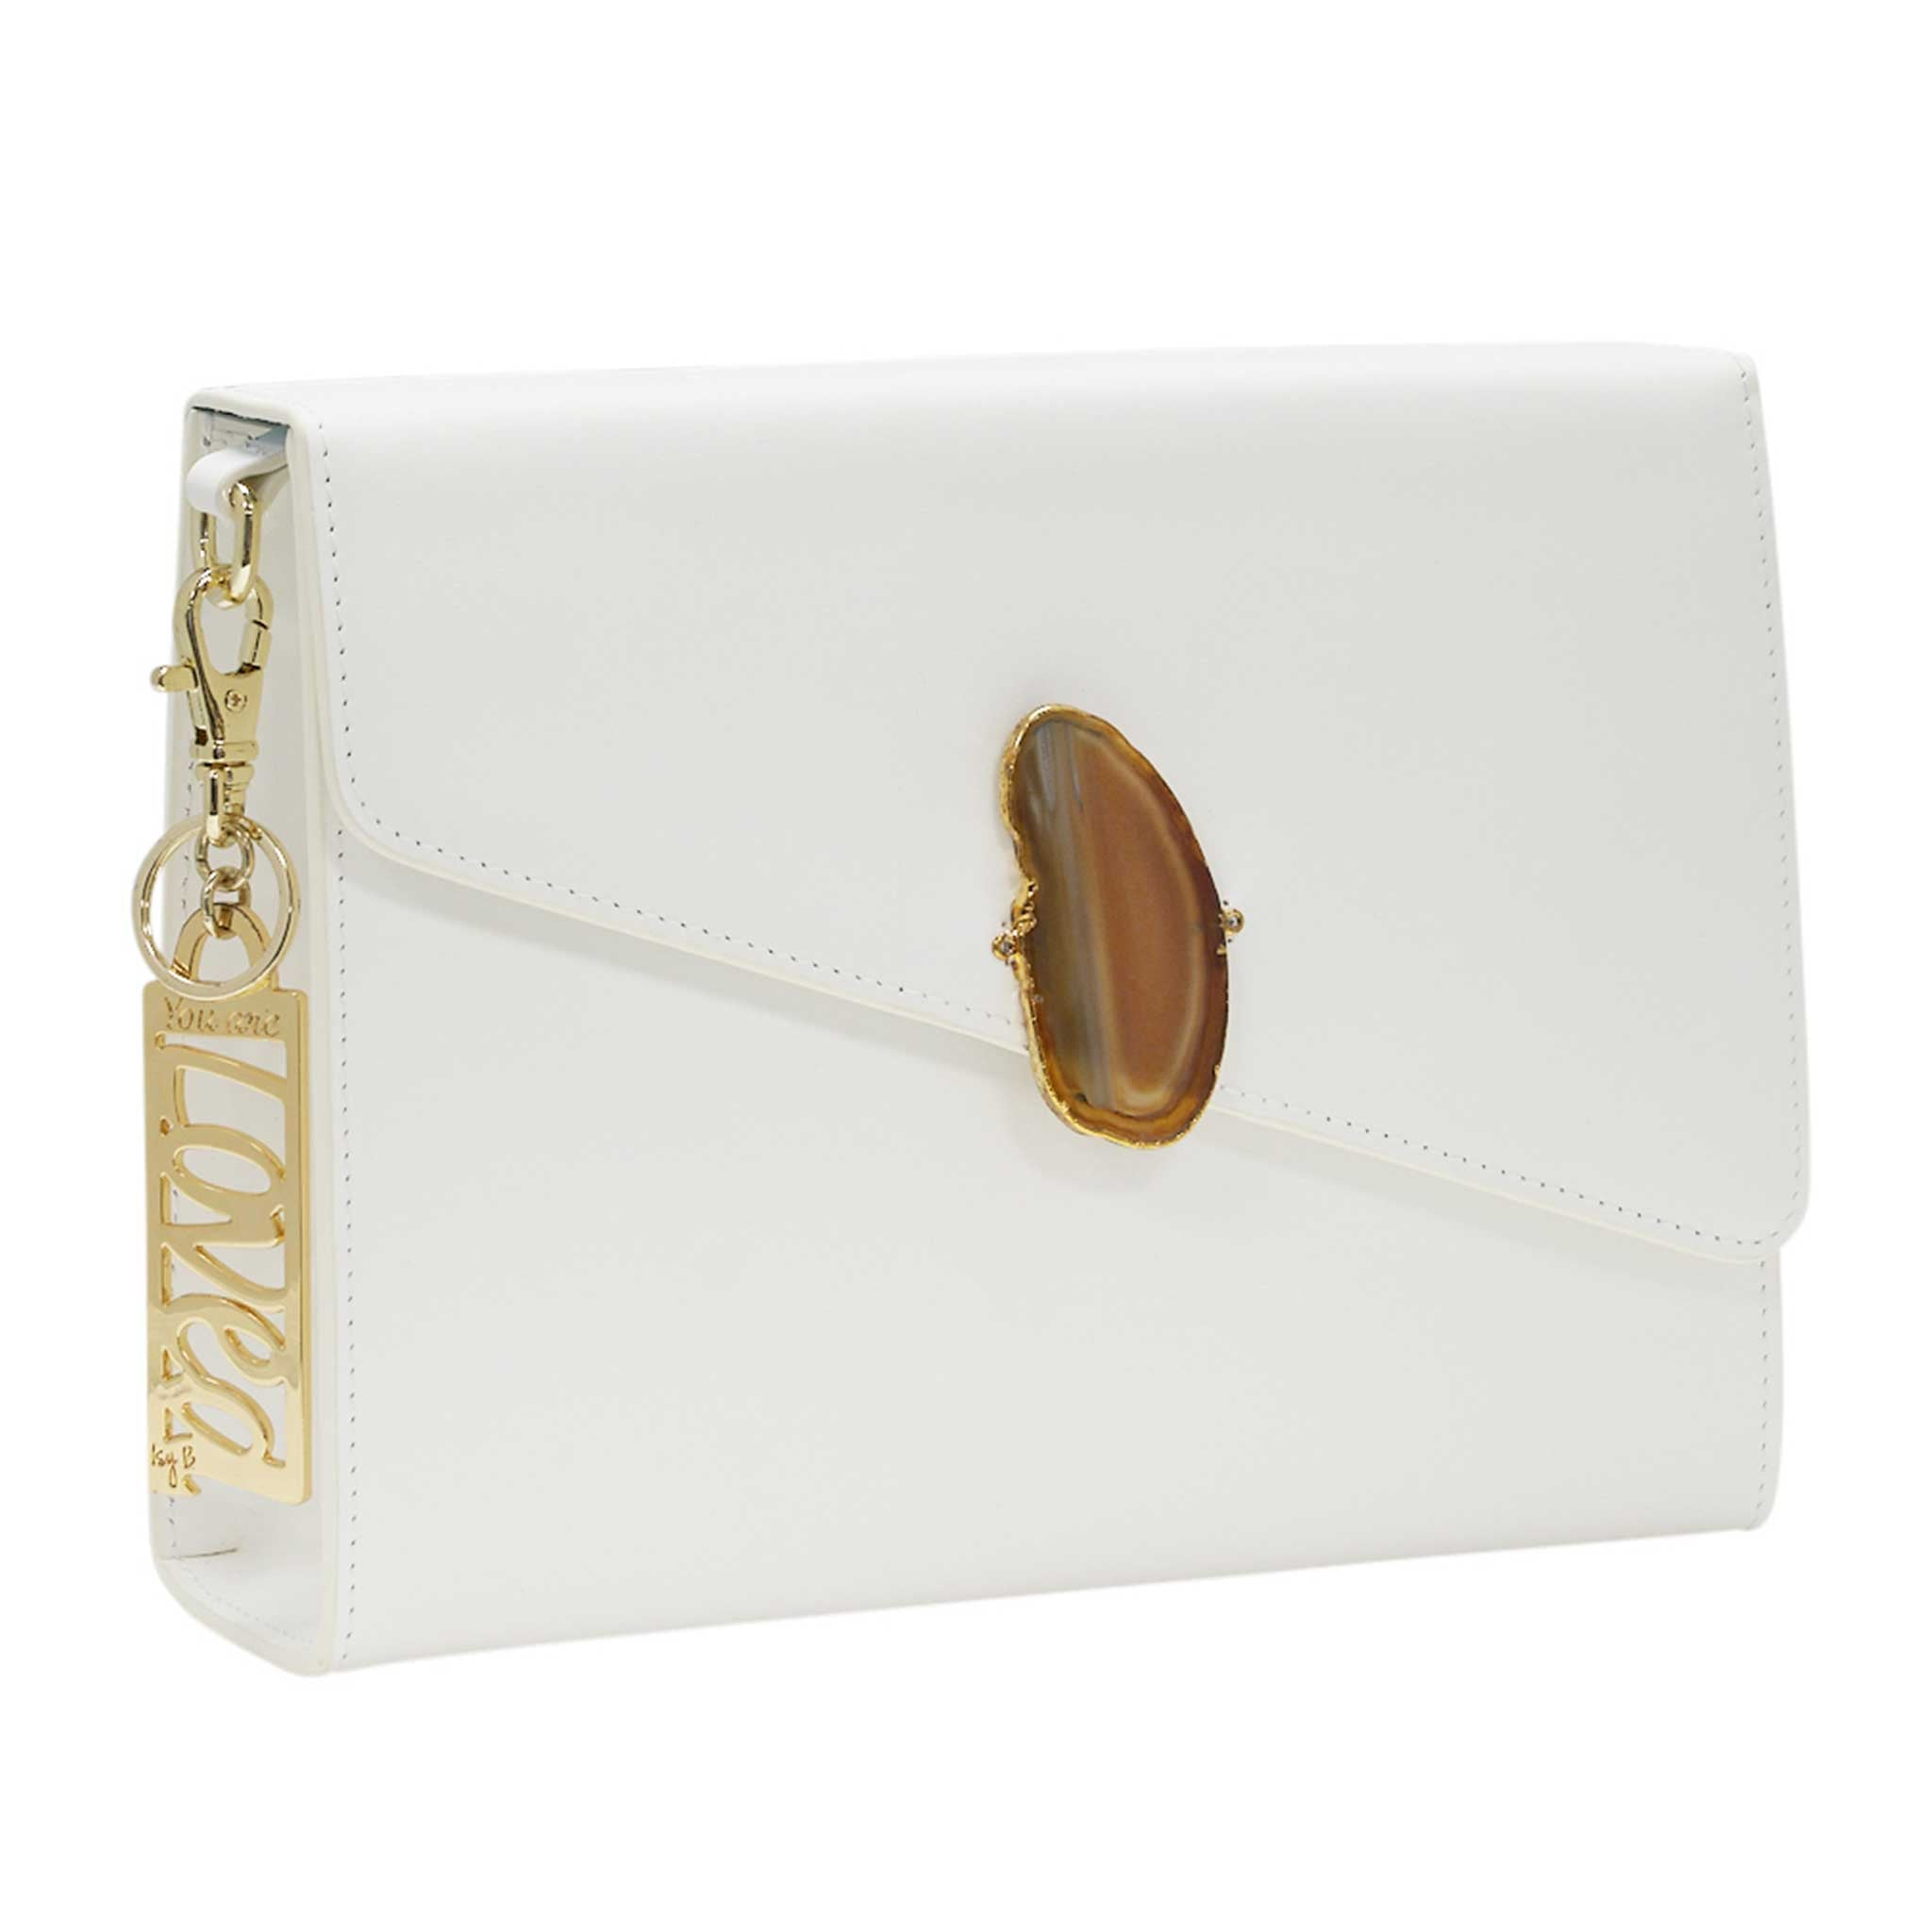 LOVED BAG - MOONSTONE WHITE LEATHER WITH BROWN AGATE - 1.03.004.036